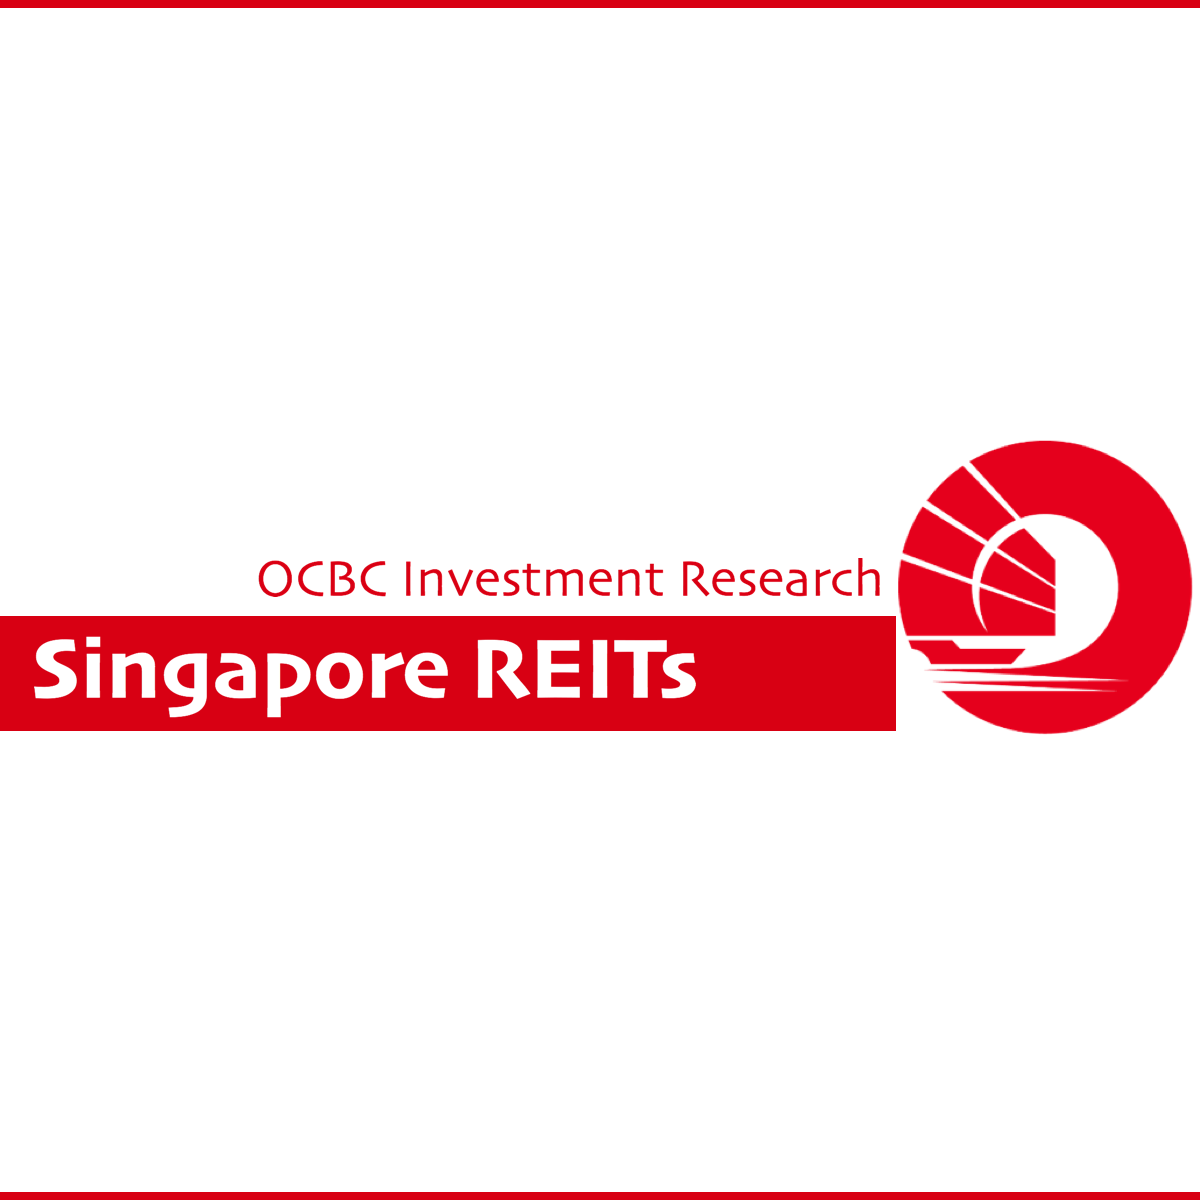 Singapore REITs - OCBC Investment Research 2018-09-04: A Defensive Armour Despite Some Chinks